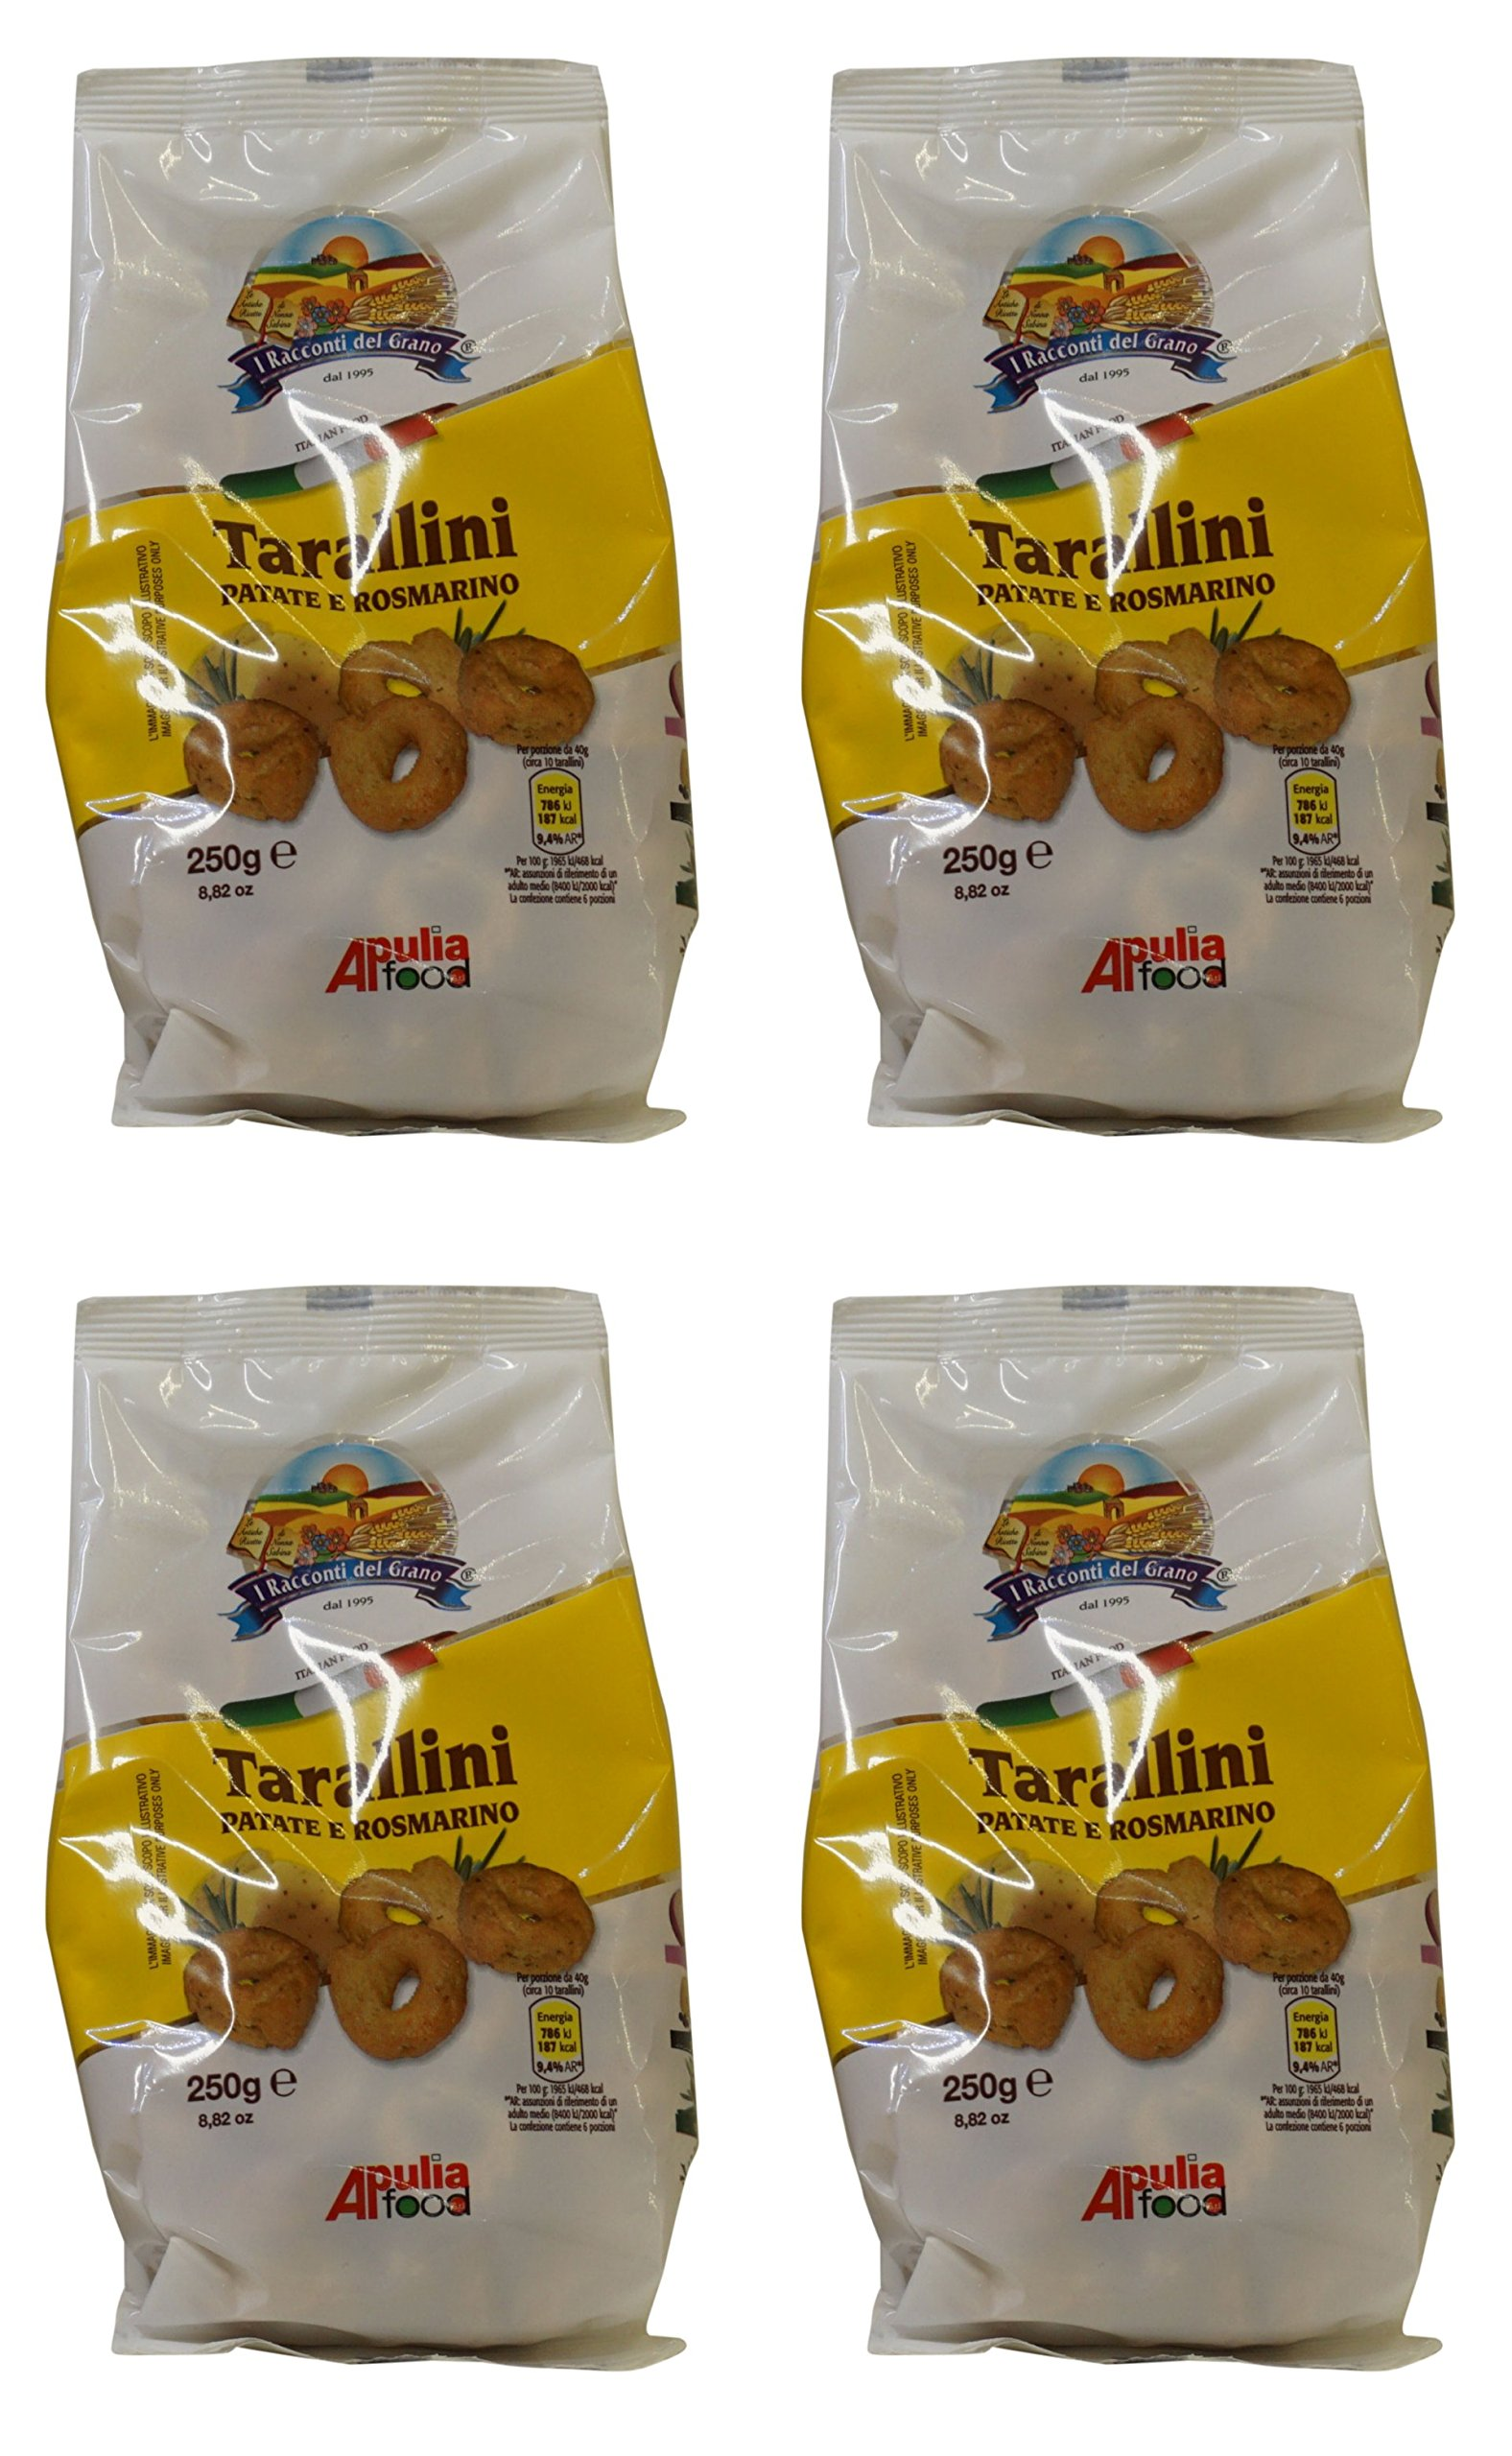 I Racconti del Grano:''Tarallini Patate e Rosmarino'' Italian Taralli, Potatoes and Rosemary Taste - 8.82 Ounces (250gr) Packages (Pack of 4) [ Italian Import ]